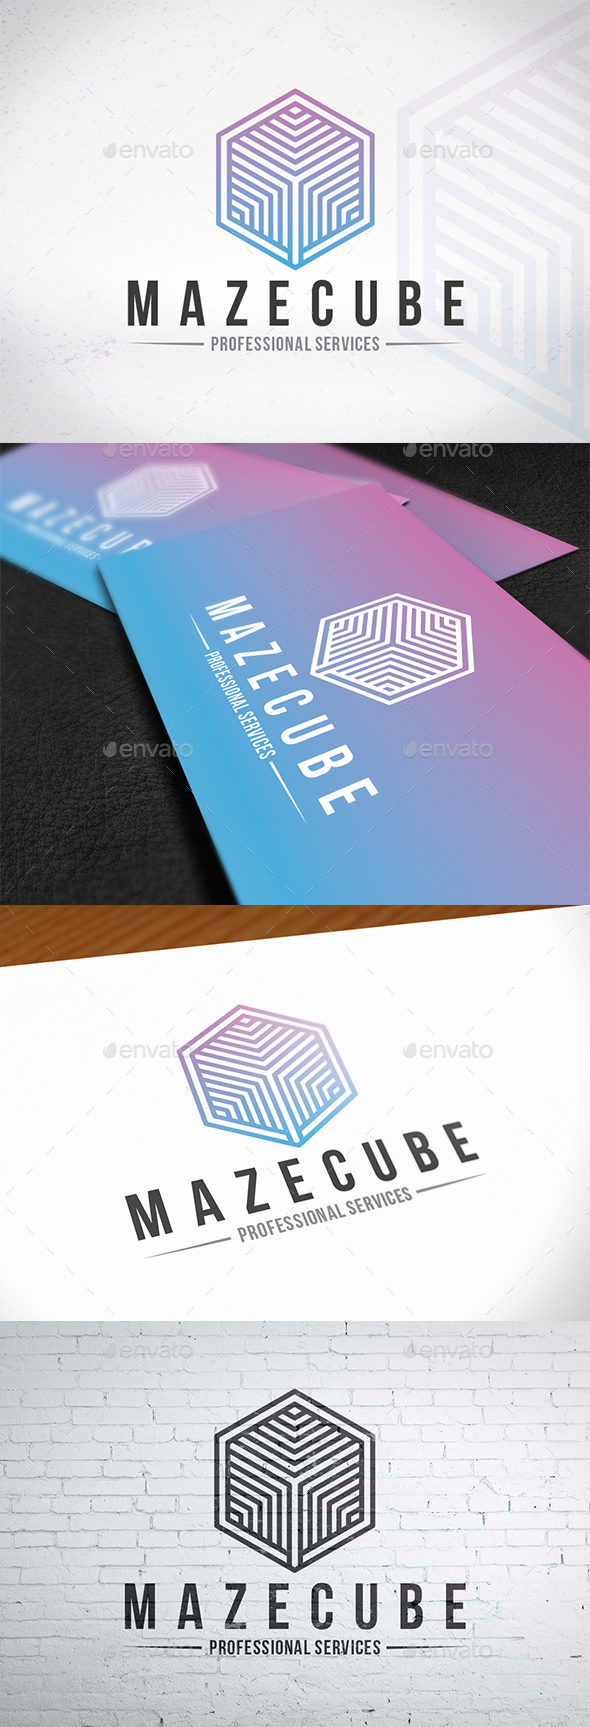 GraphicRiver Maze Cube Logo Design 20501948